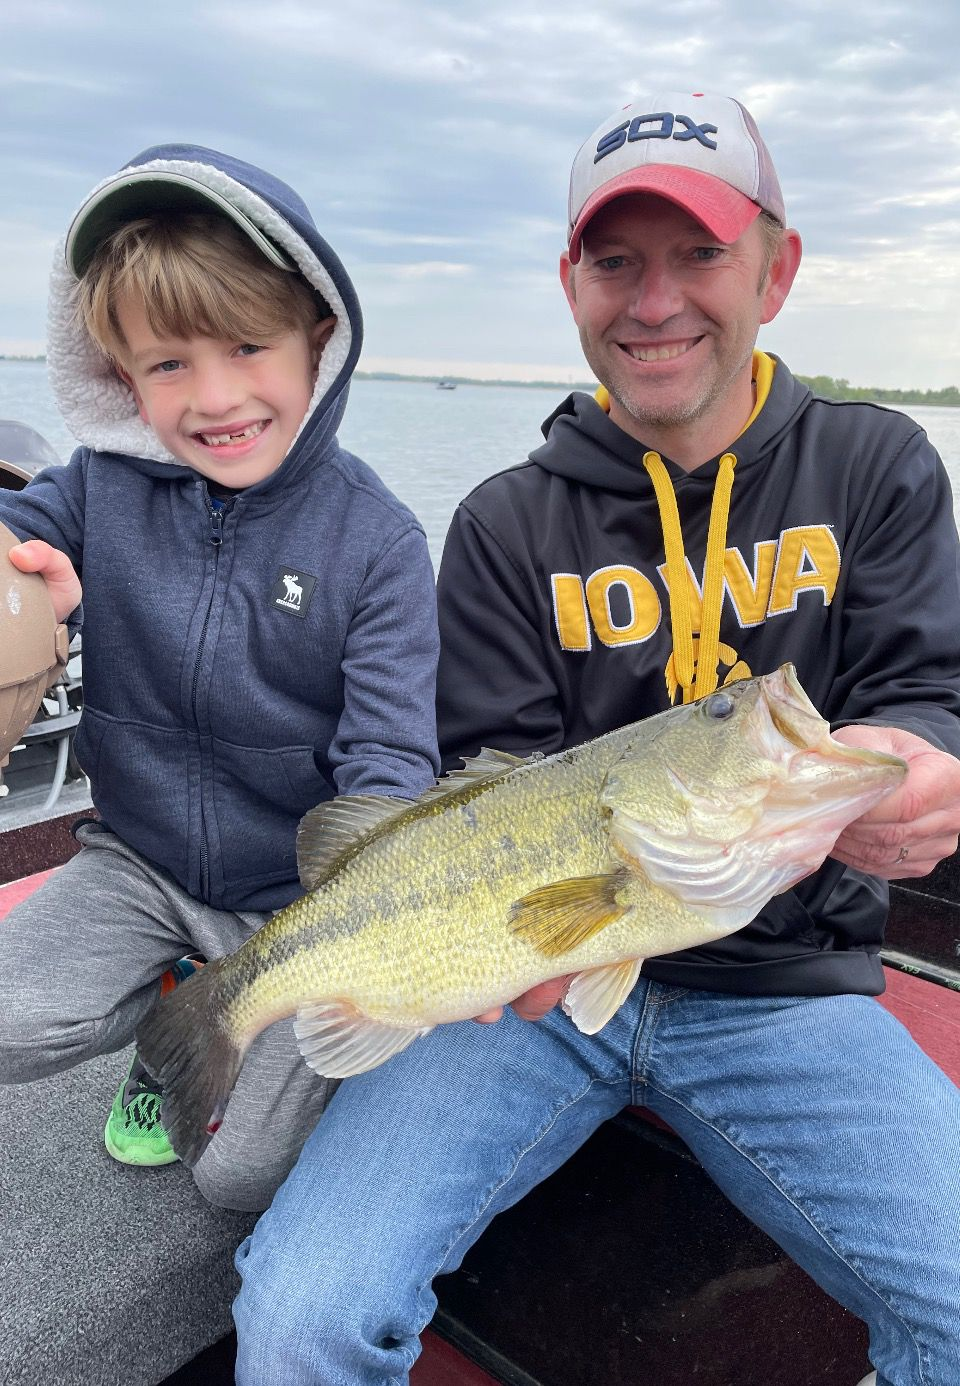 Tim O'Connell, of Sugar Grove, holding a 19-inch largemouth bass caught by Will, his 8-year-old son, on a recent guide trip with Mike Norris. Provided photo